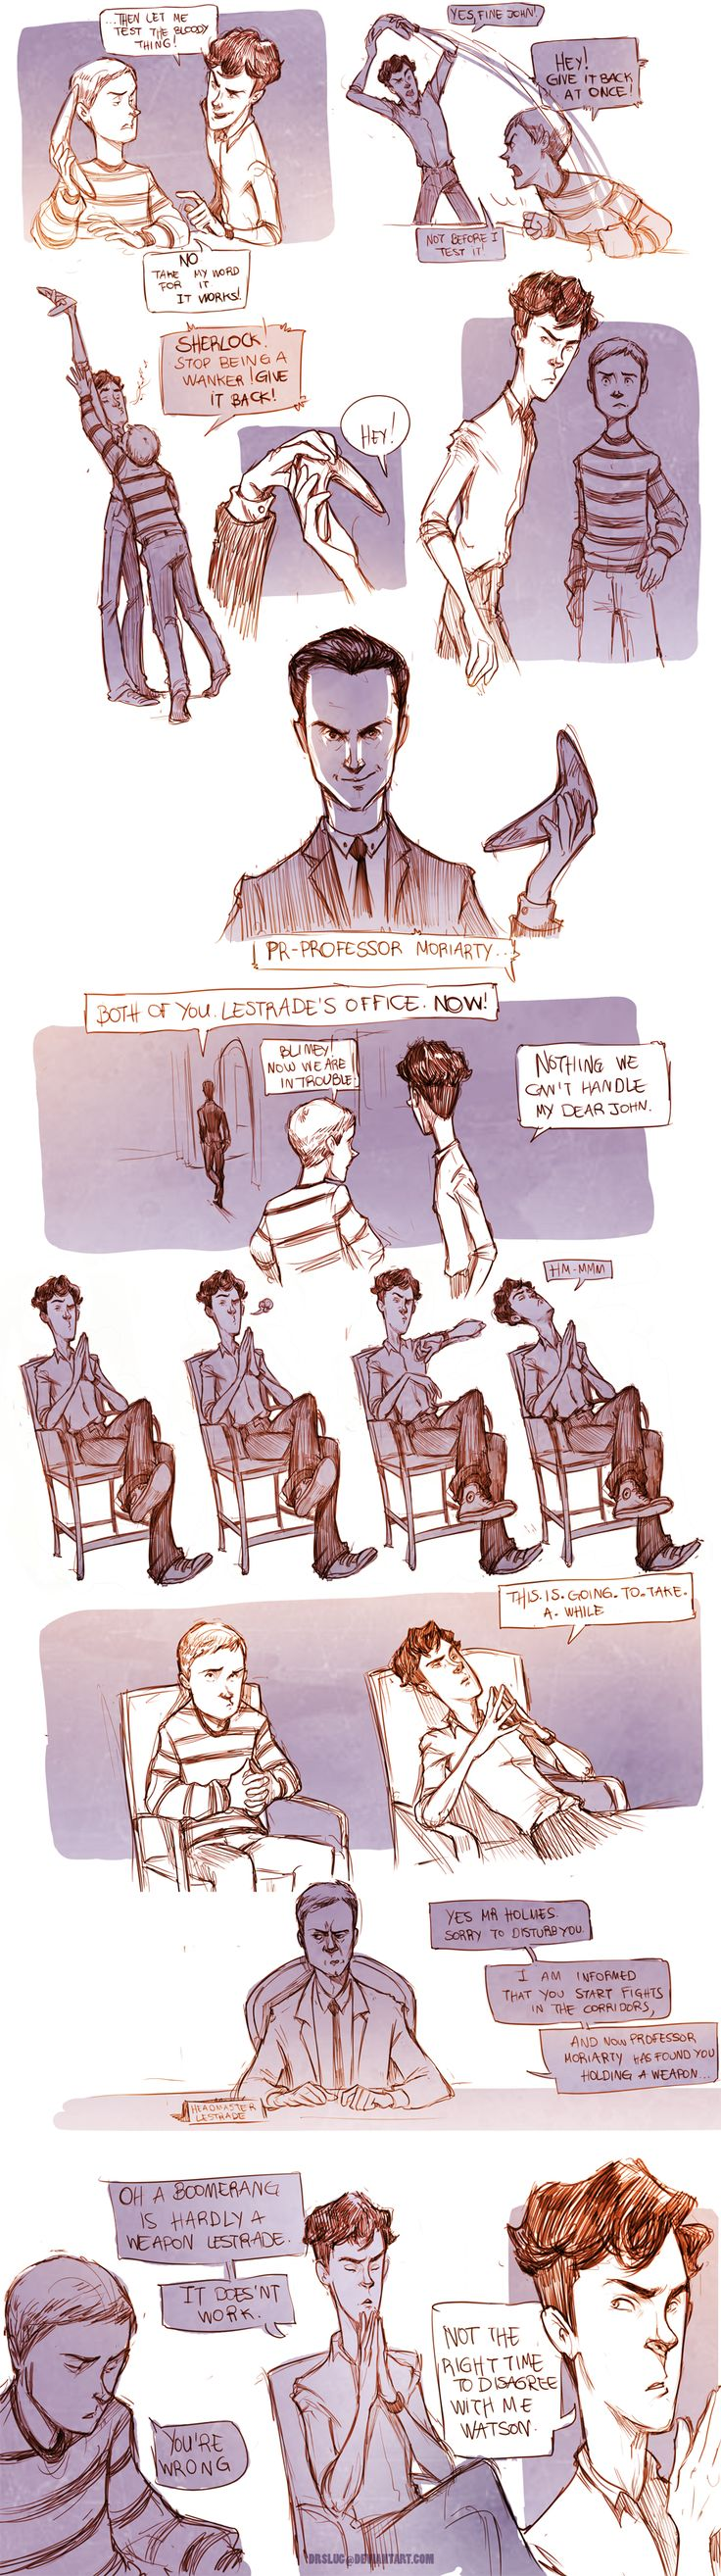 Teen Sherlock- The Boomerang Pt1 by DrSlug.deviantart.com on @deviantART